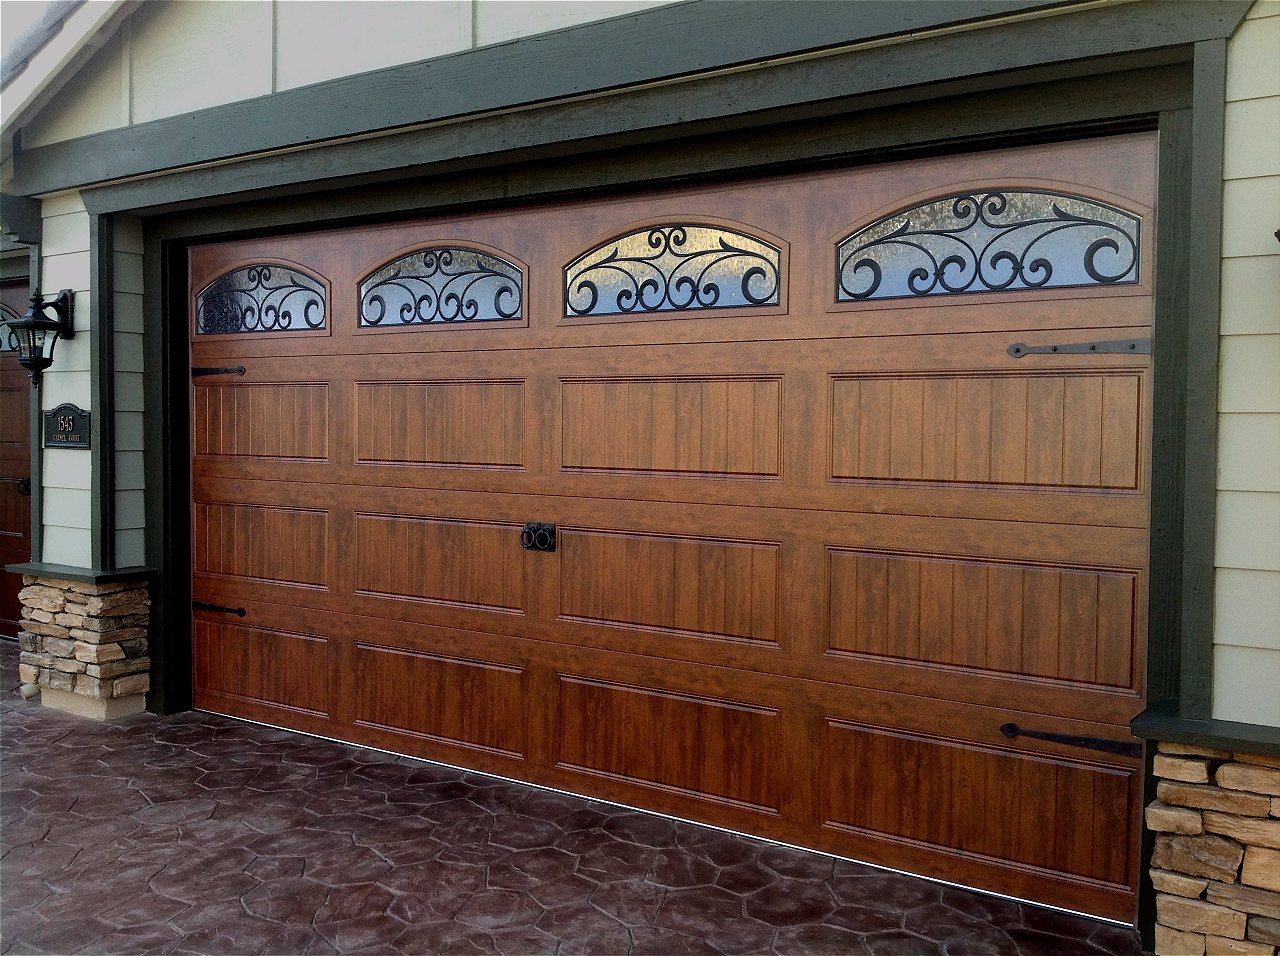 ... the three-layer Gallery® Collection is virtually maintenance-free so the first fabulous impression becomes a lasting impression. Garage Door ... & Clopay Gallery Steel Woodgrain Garage Doors | On Trac Garage Doors